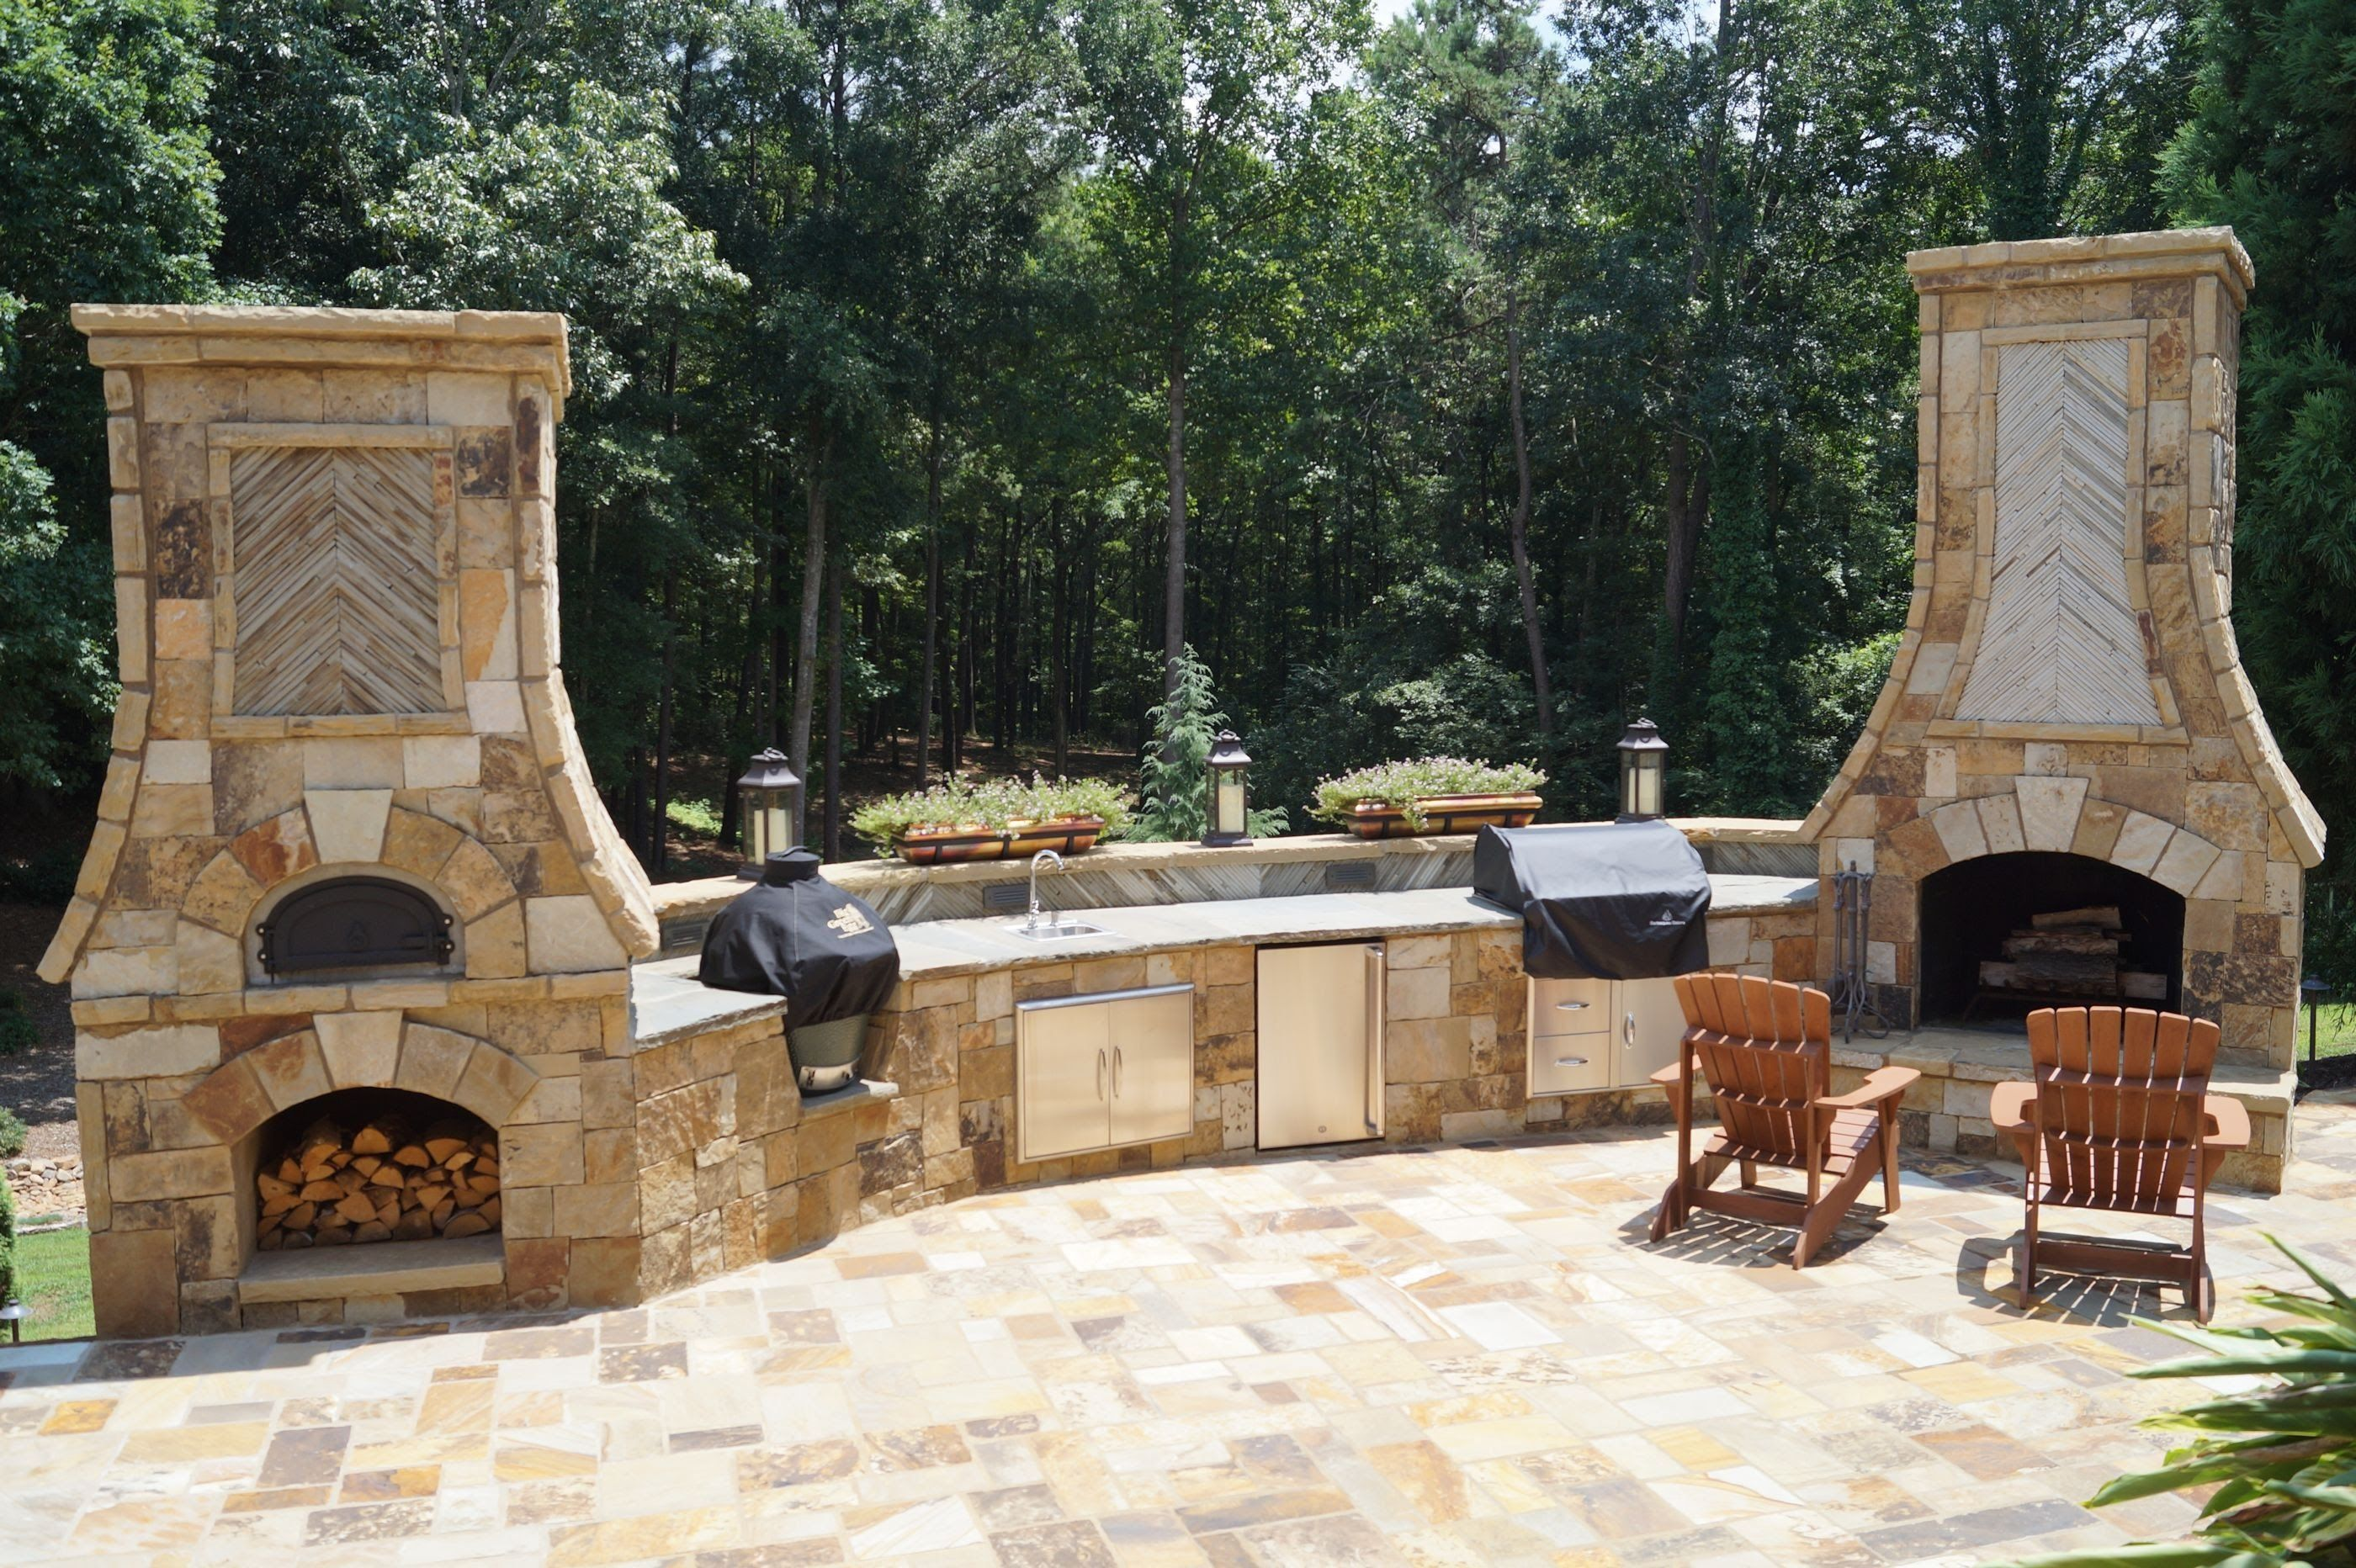 Outdoor kitchen with pizza oven and smoker outdoor decor